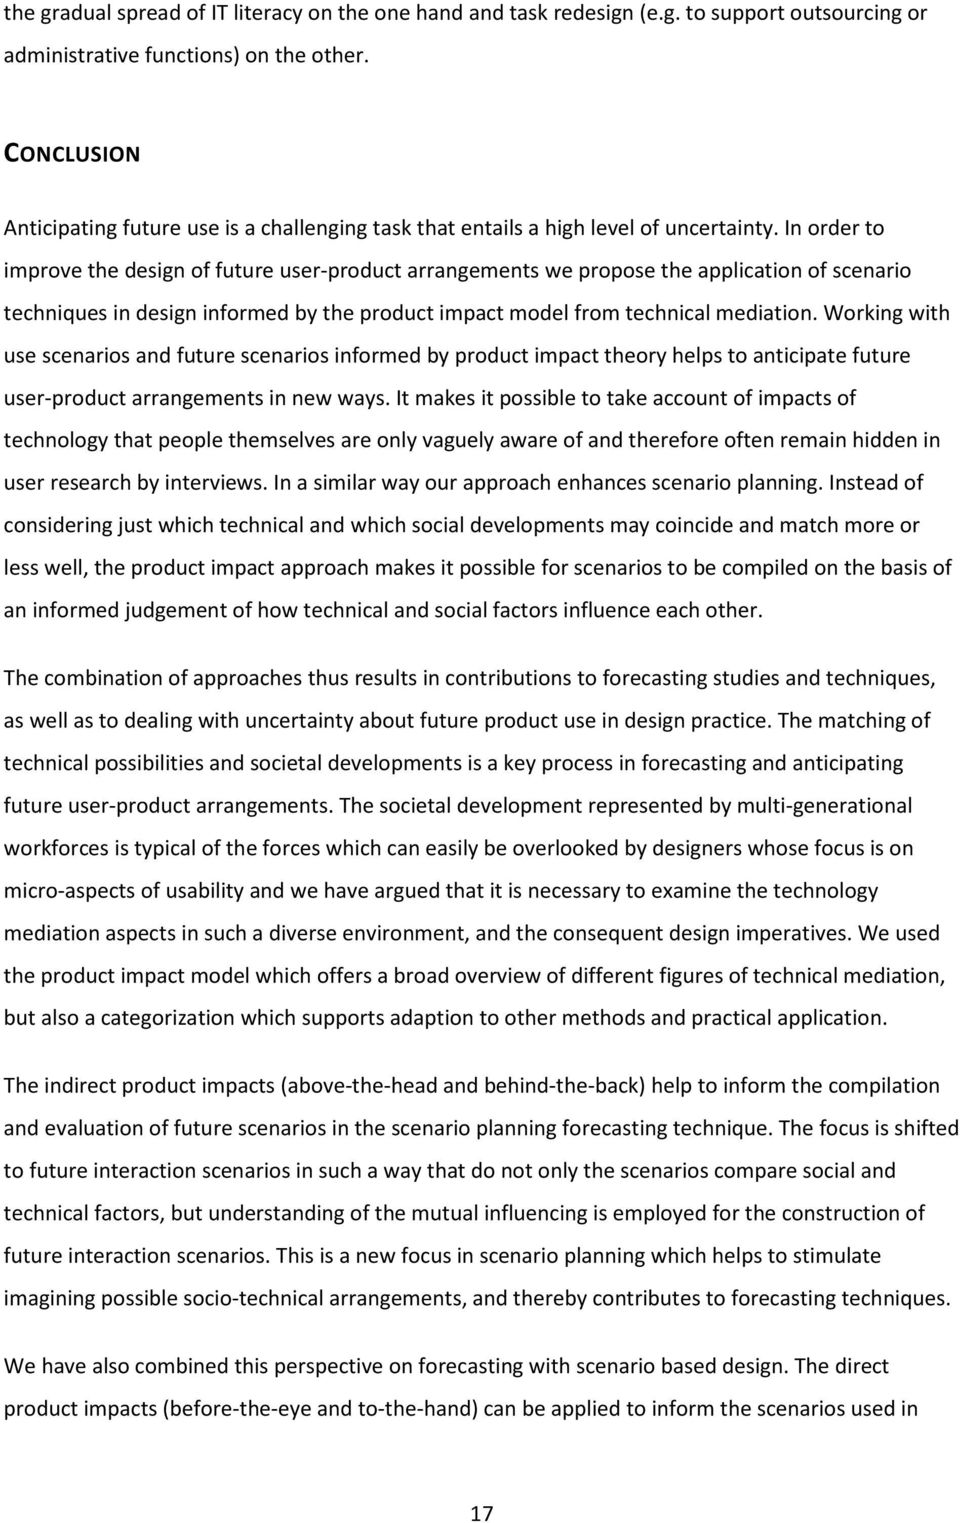 In order to improve the design of future user-product arrangements we propose the application of scenario techniques in design informed by the product impact model from technical mediation.